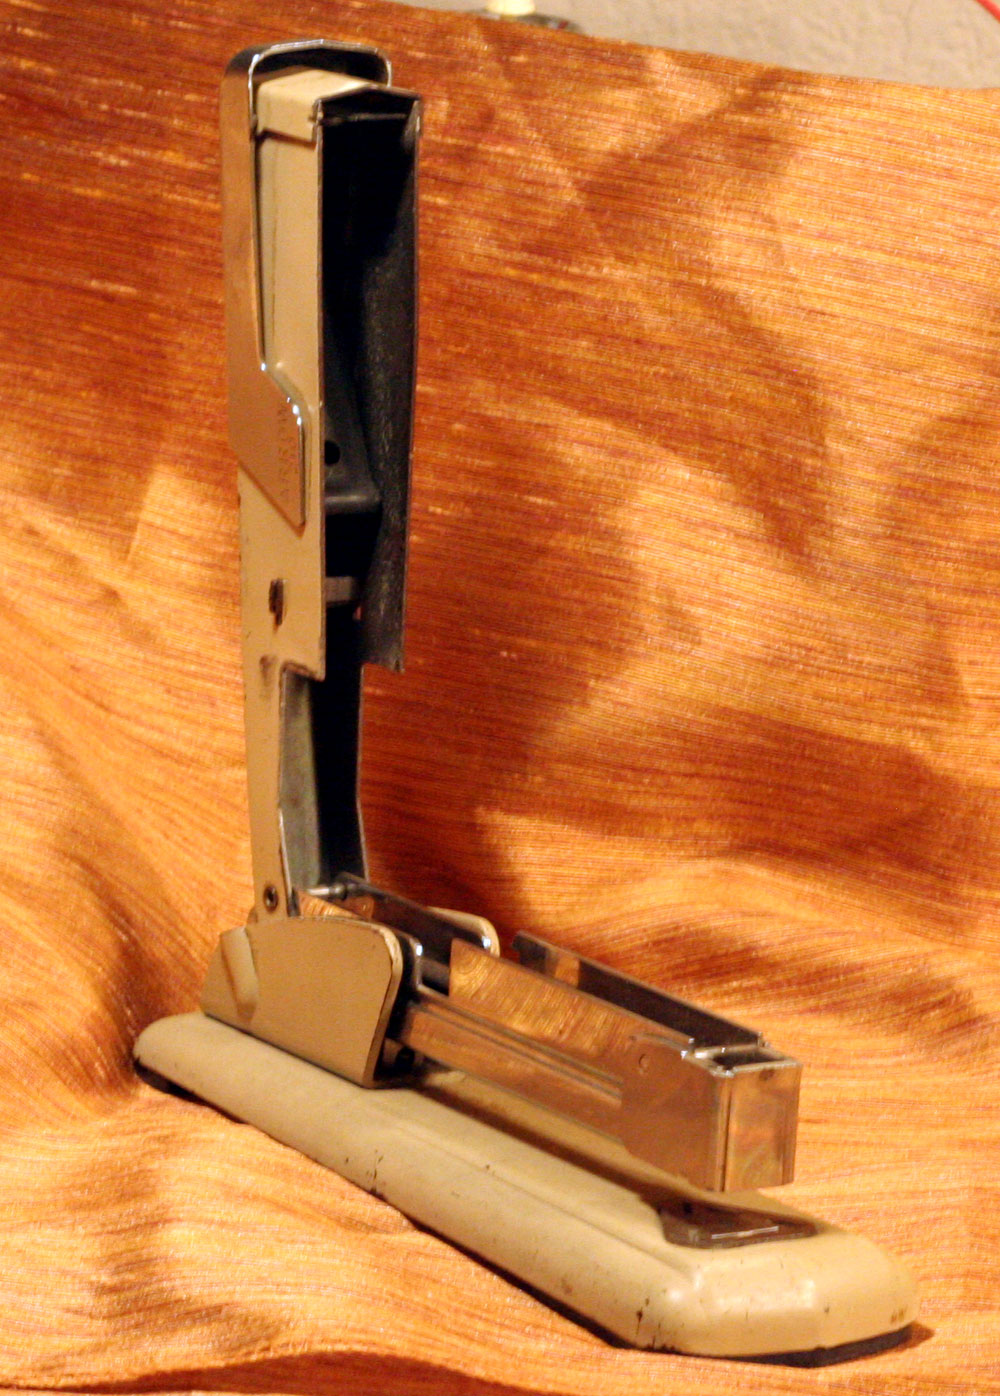 IMG 7297 Stapler of The Week: 1950s Arrow 210